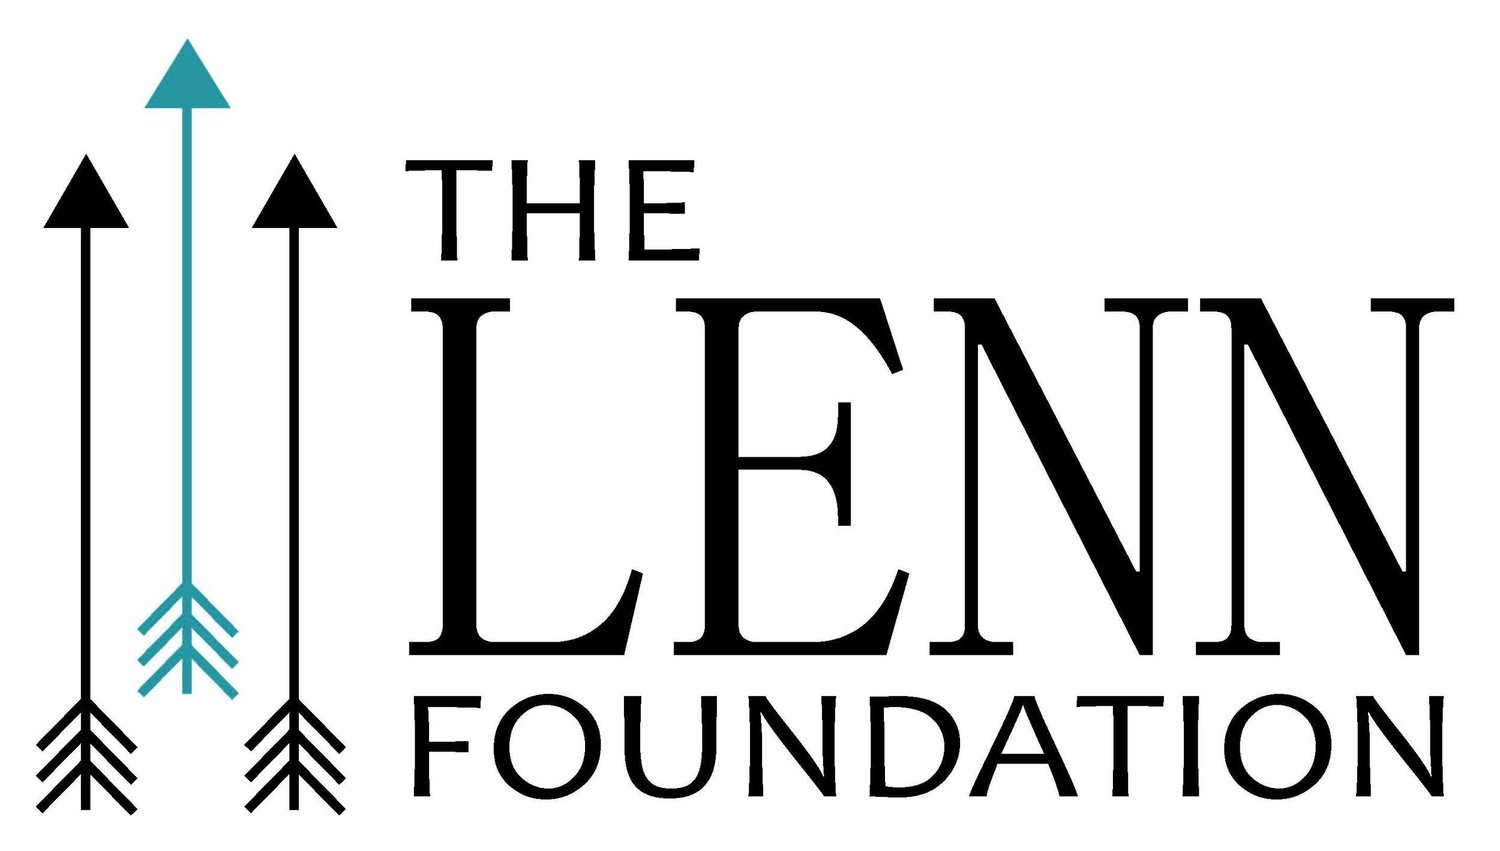 The LENN Foundation